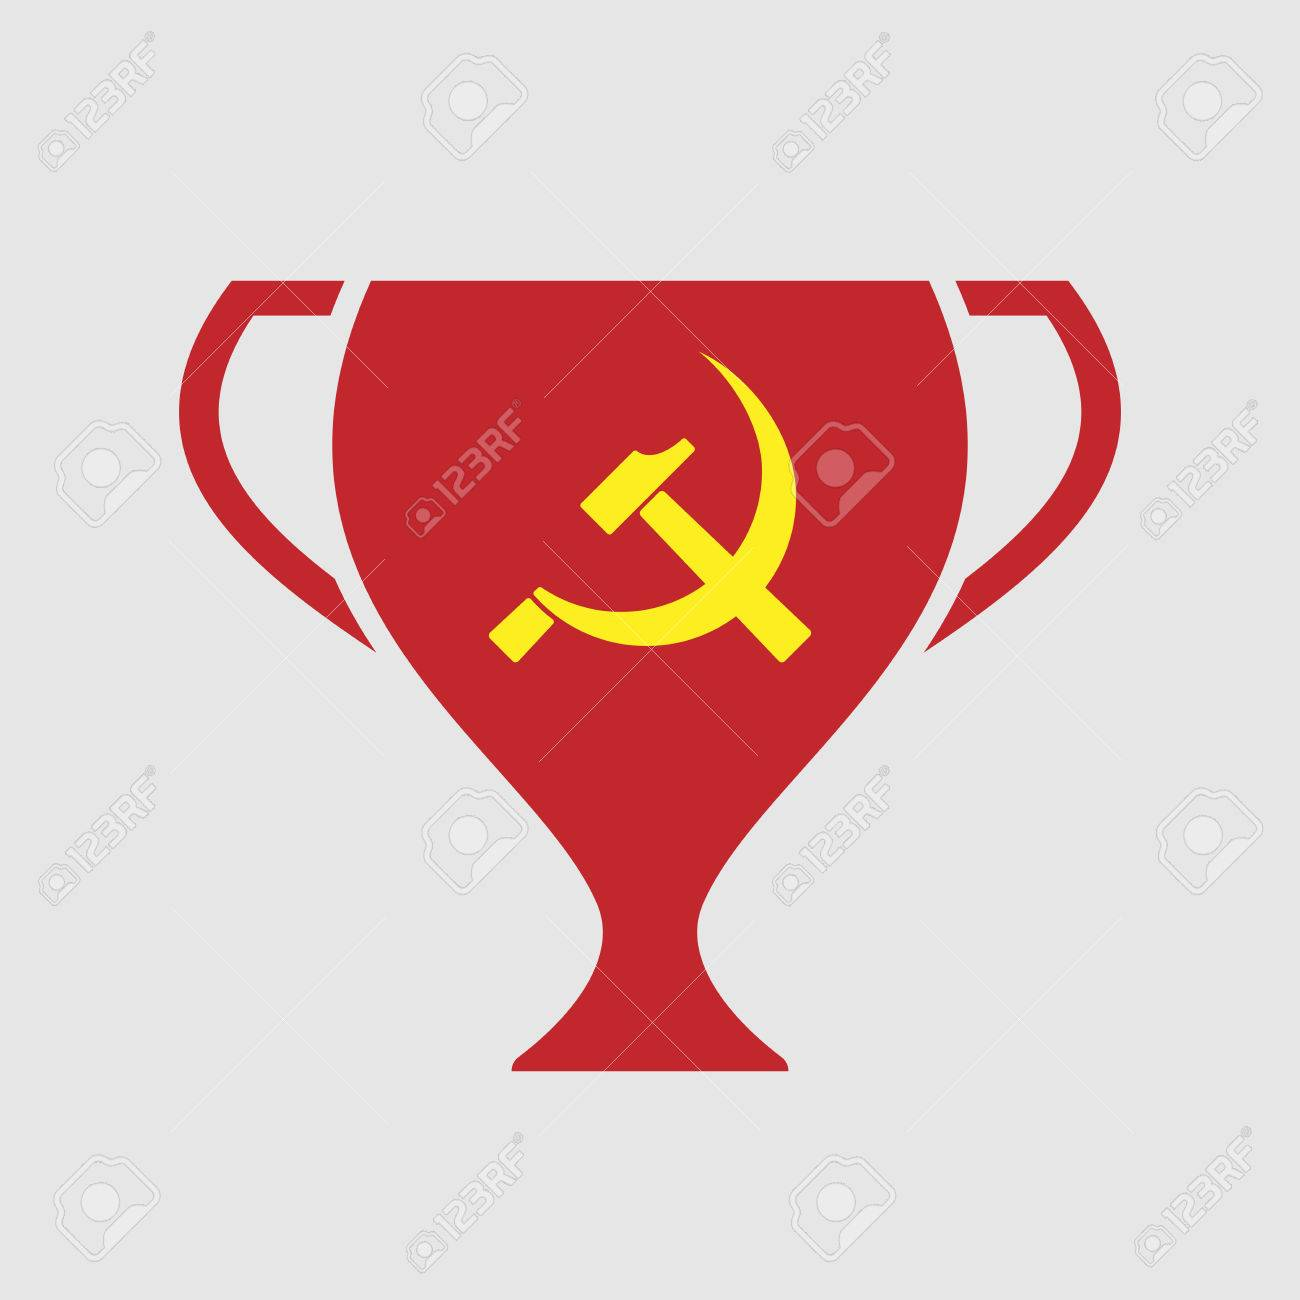 Illustration Of An Isolated Award Cup Icon With The Communist